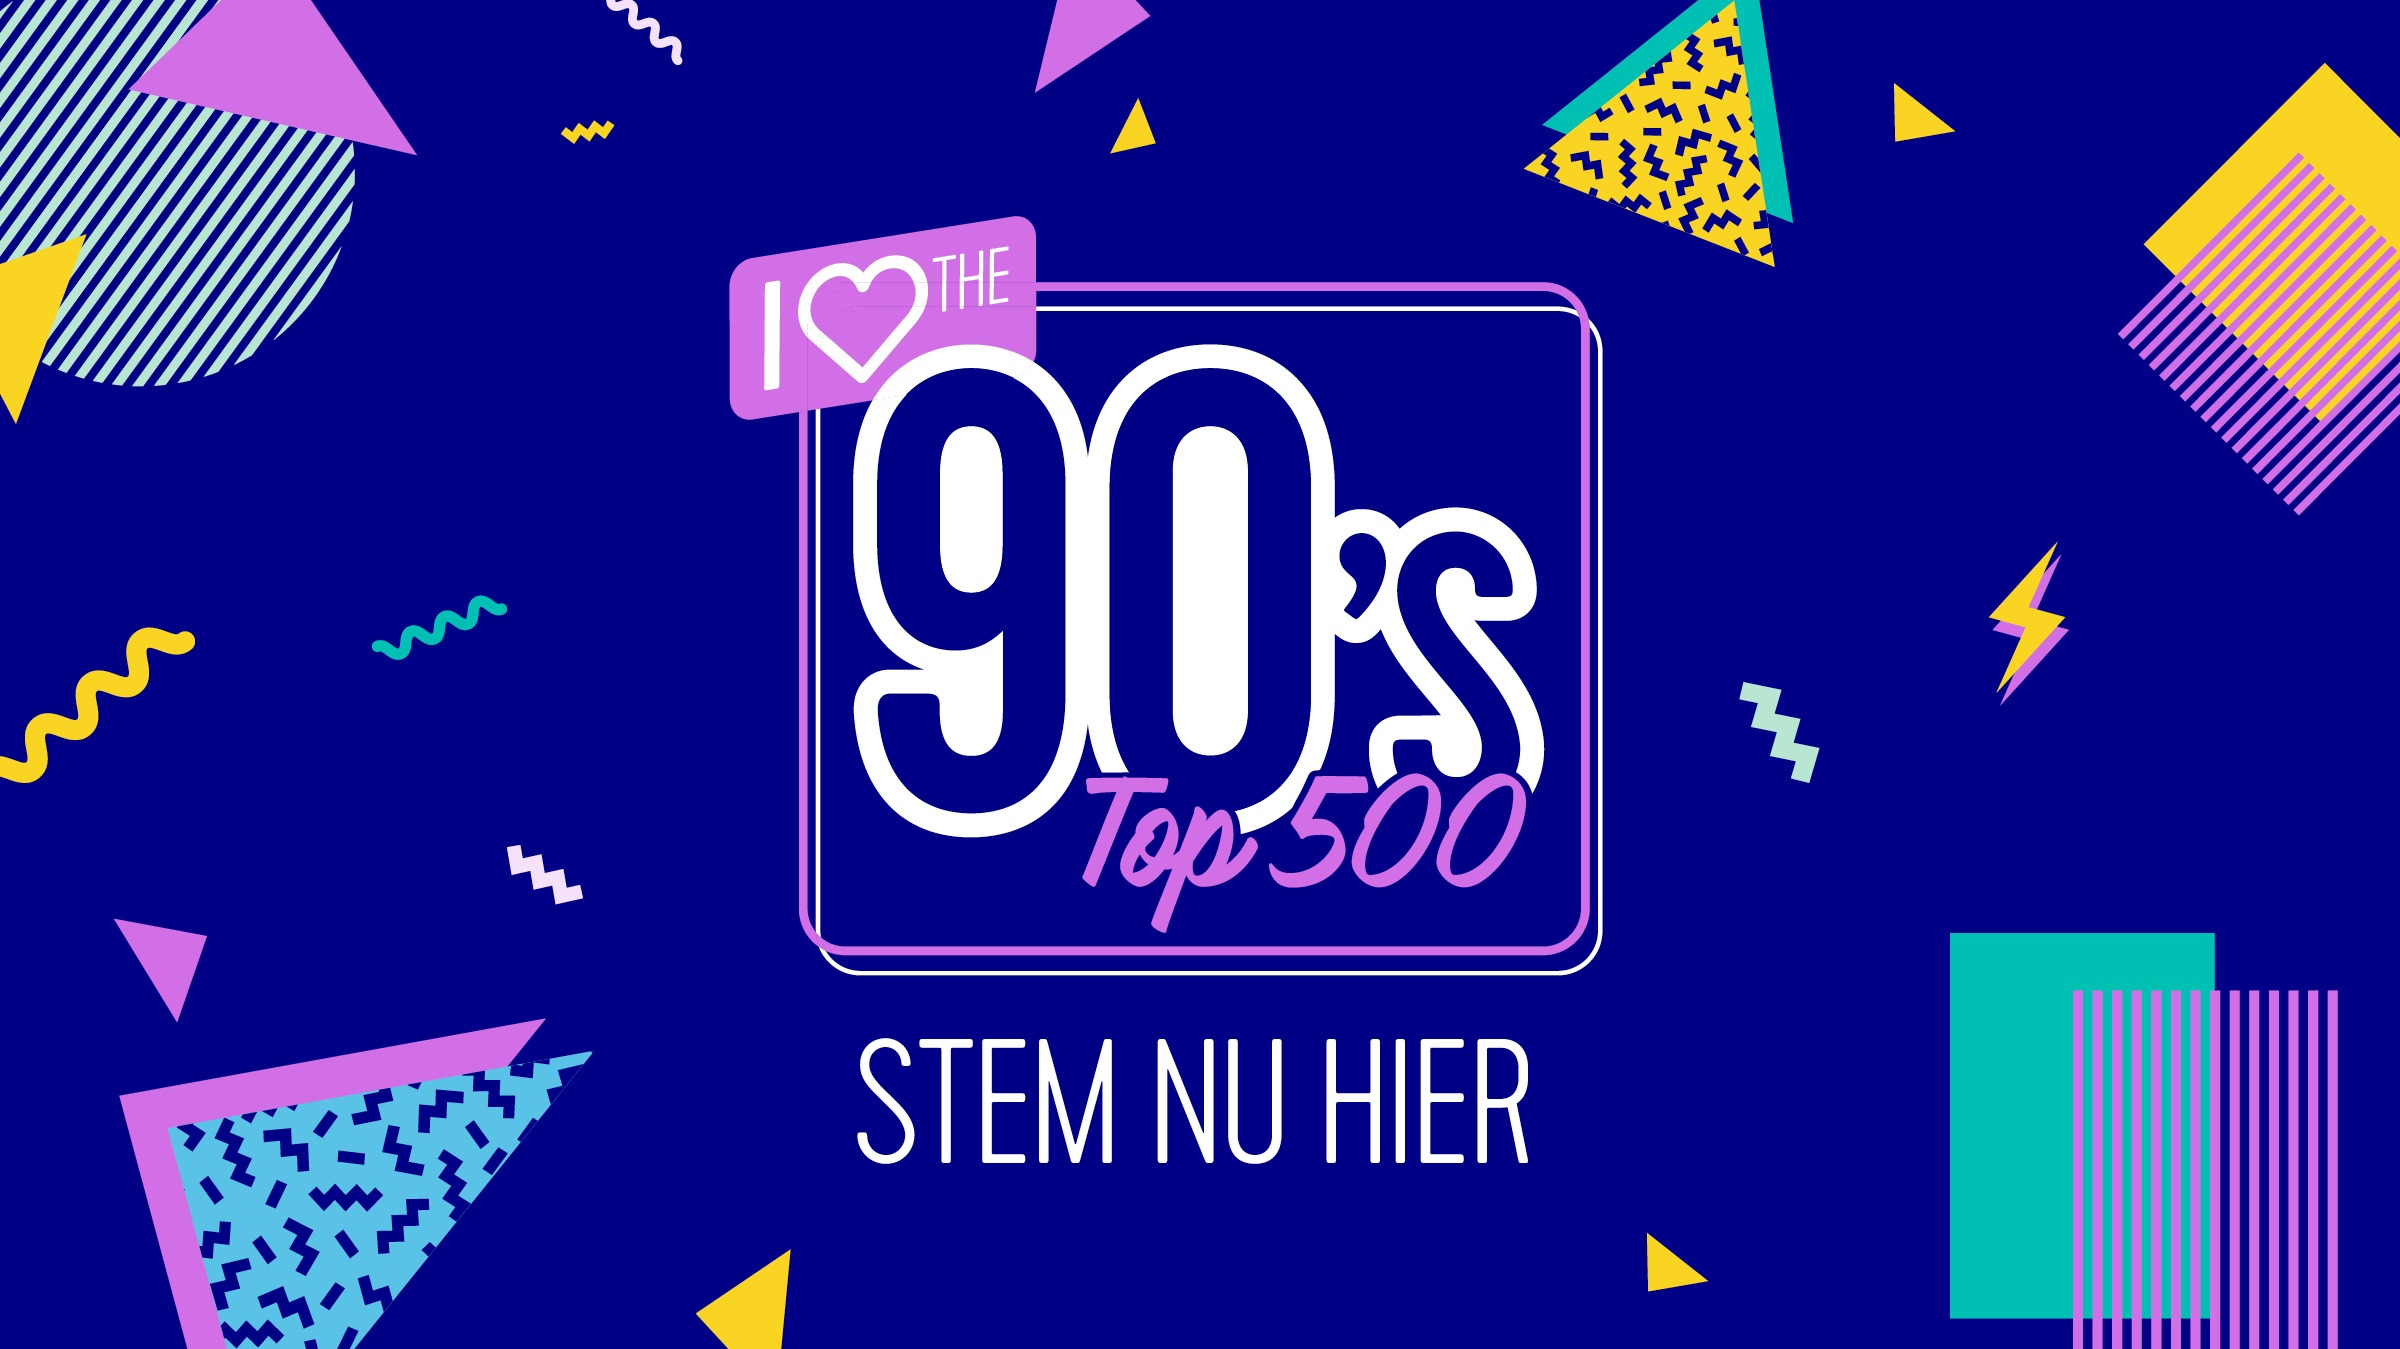 I love the 90ies top 500